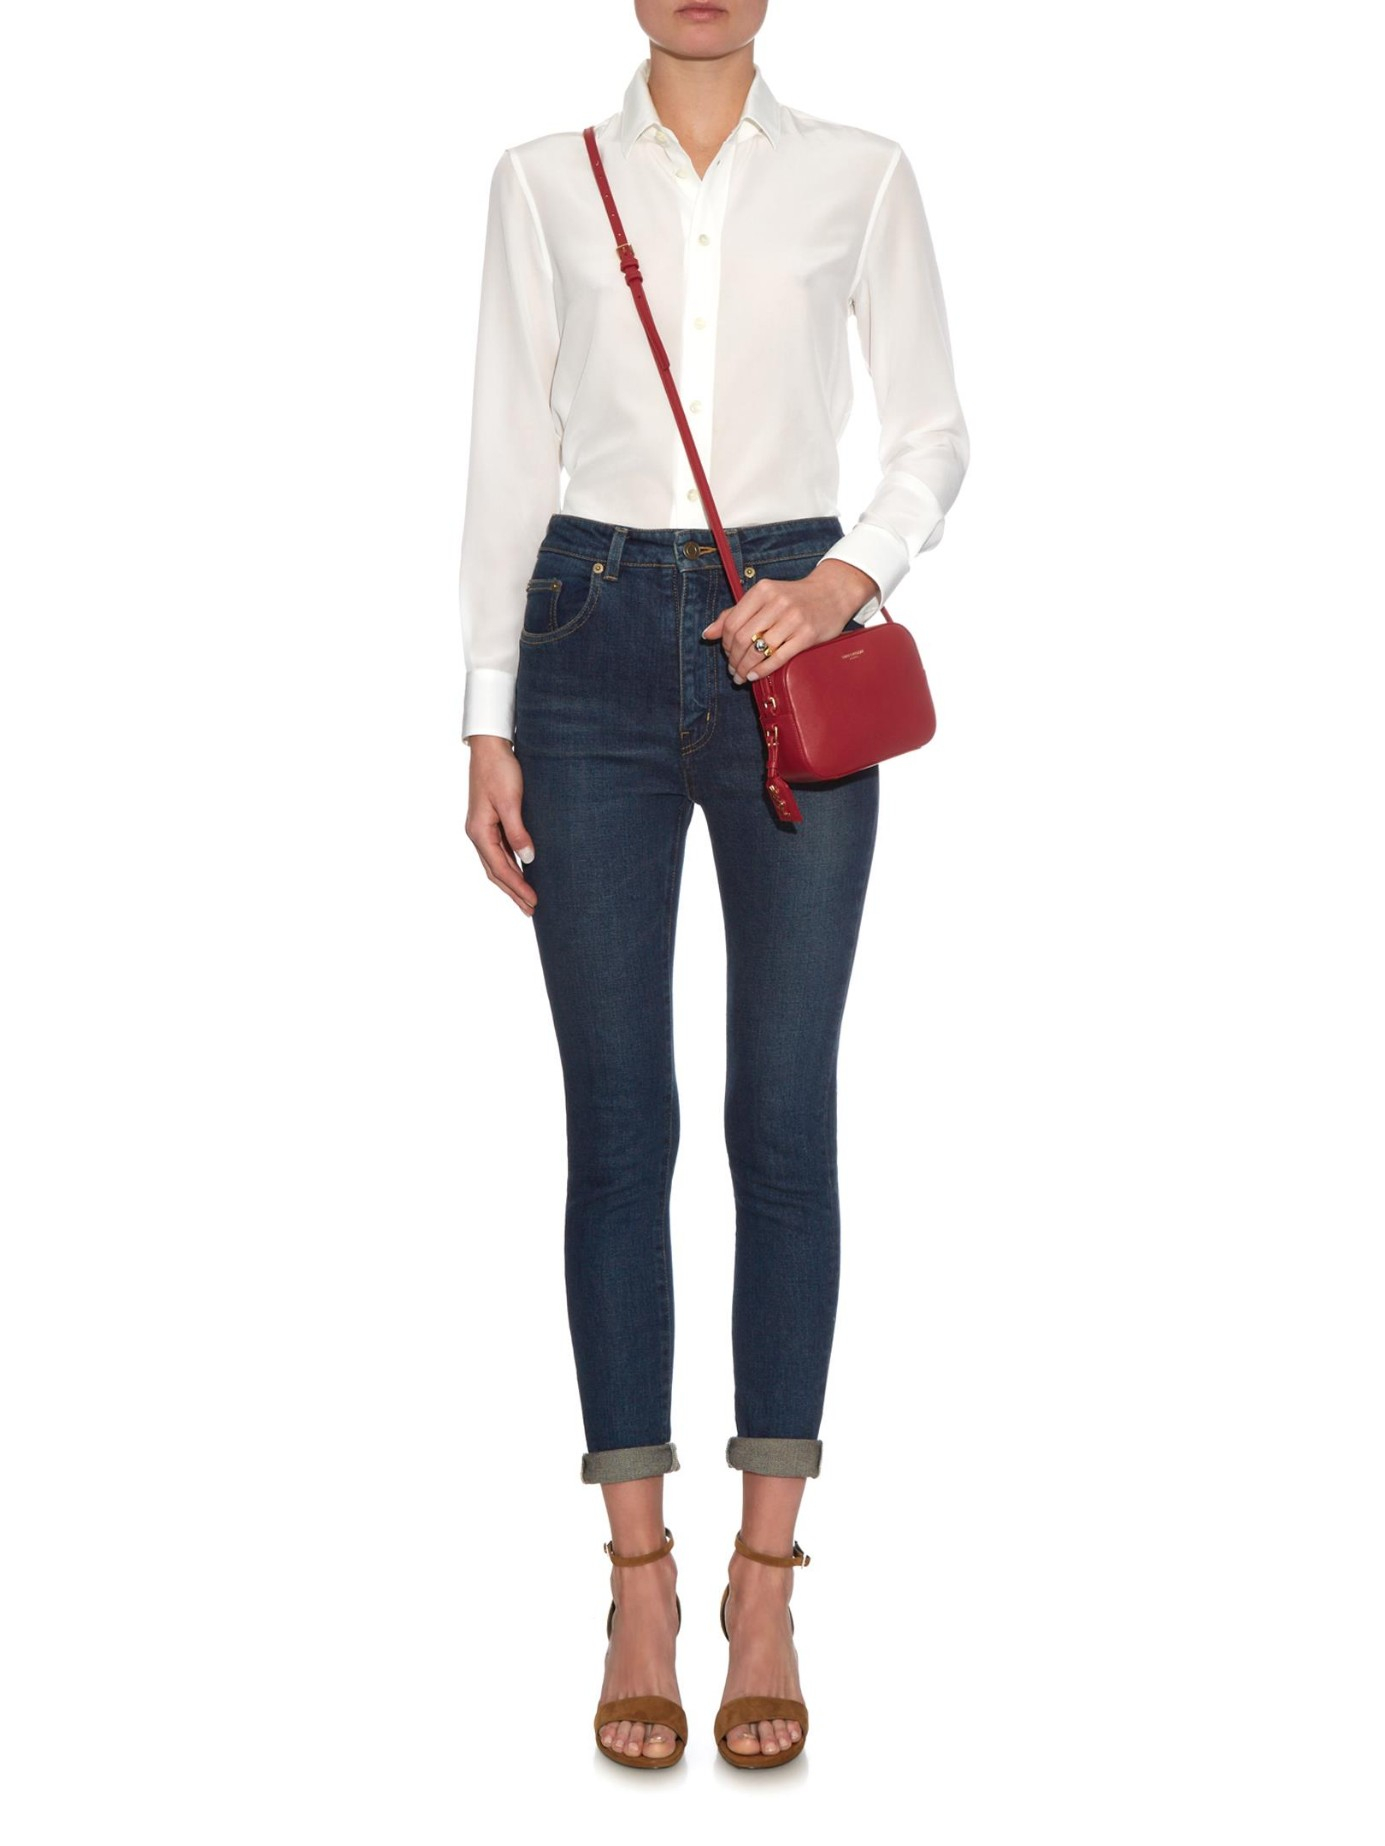 Lyst - Saint Laurent Monogram Small Leather Cross-body Bag in Red bf1a05d09cb6f